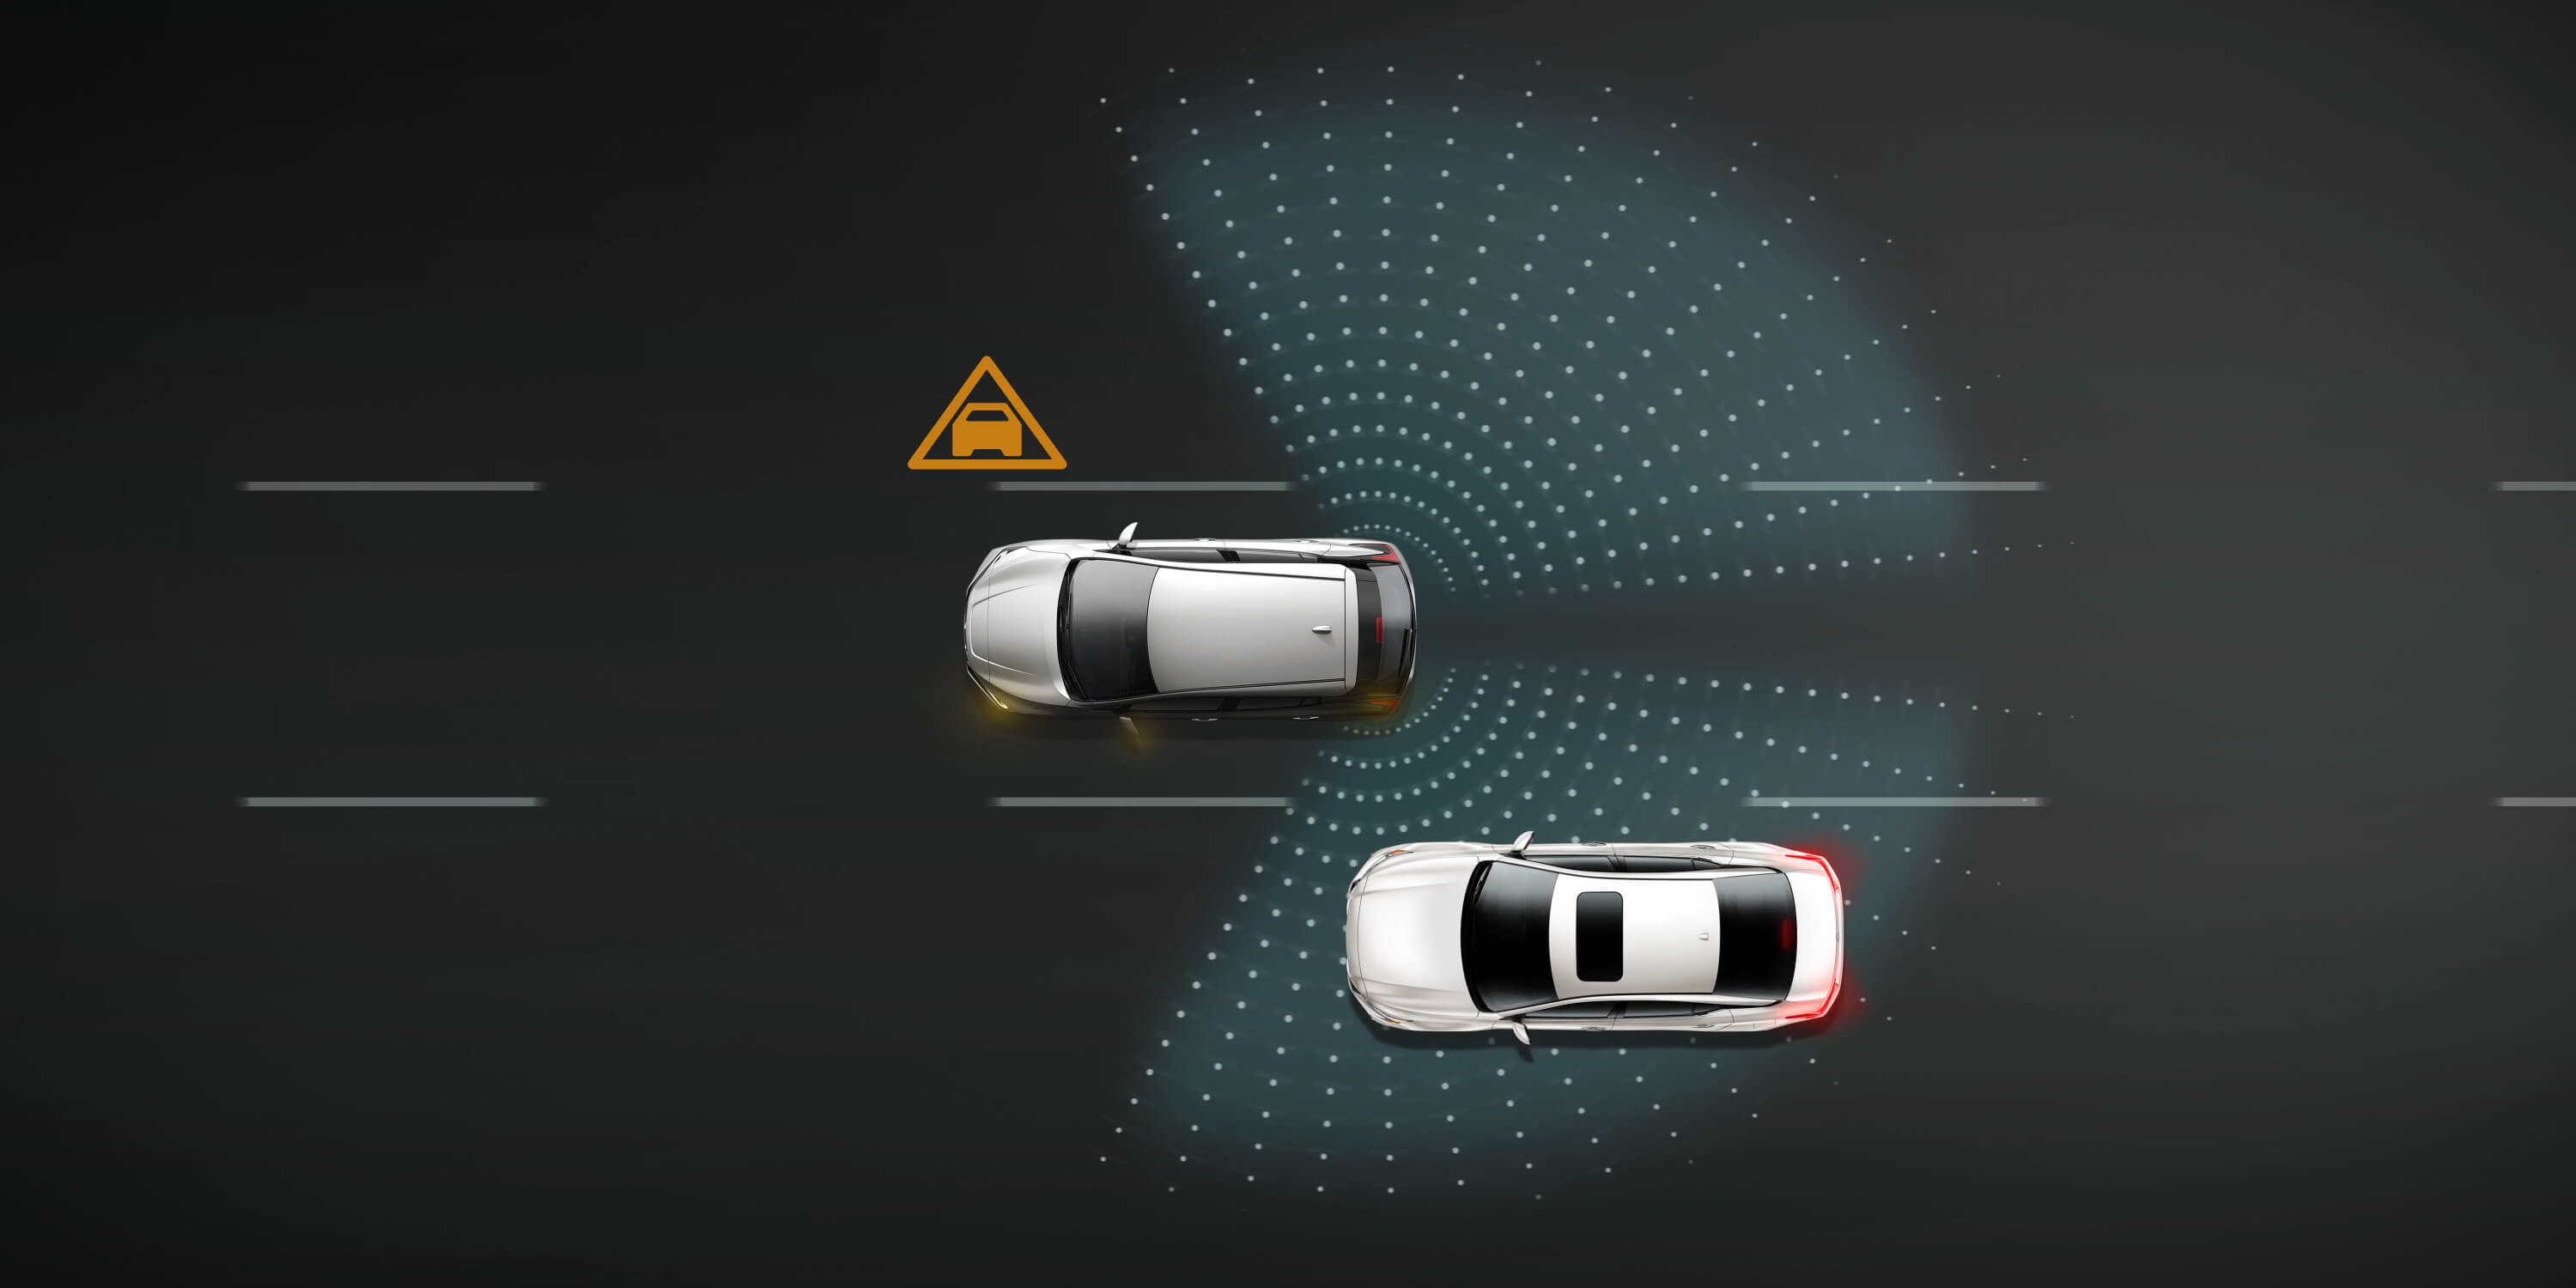 Blind-Spot Warning Image